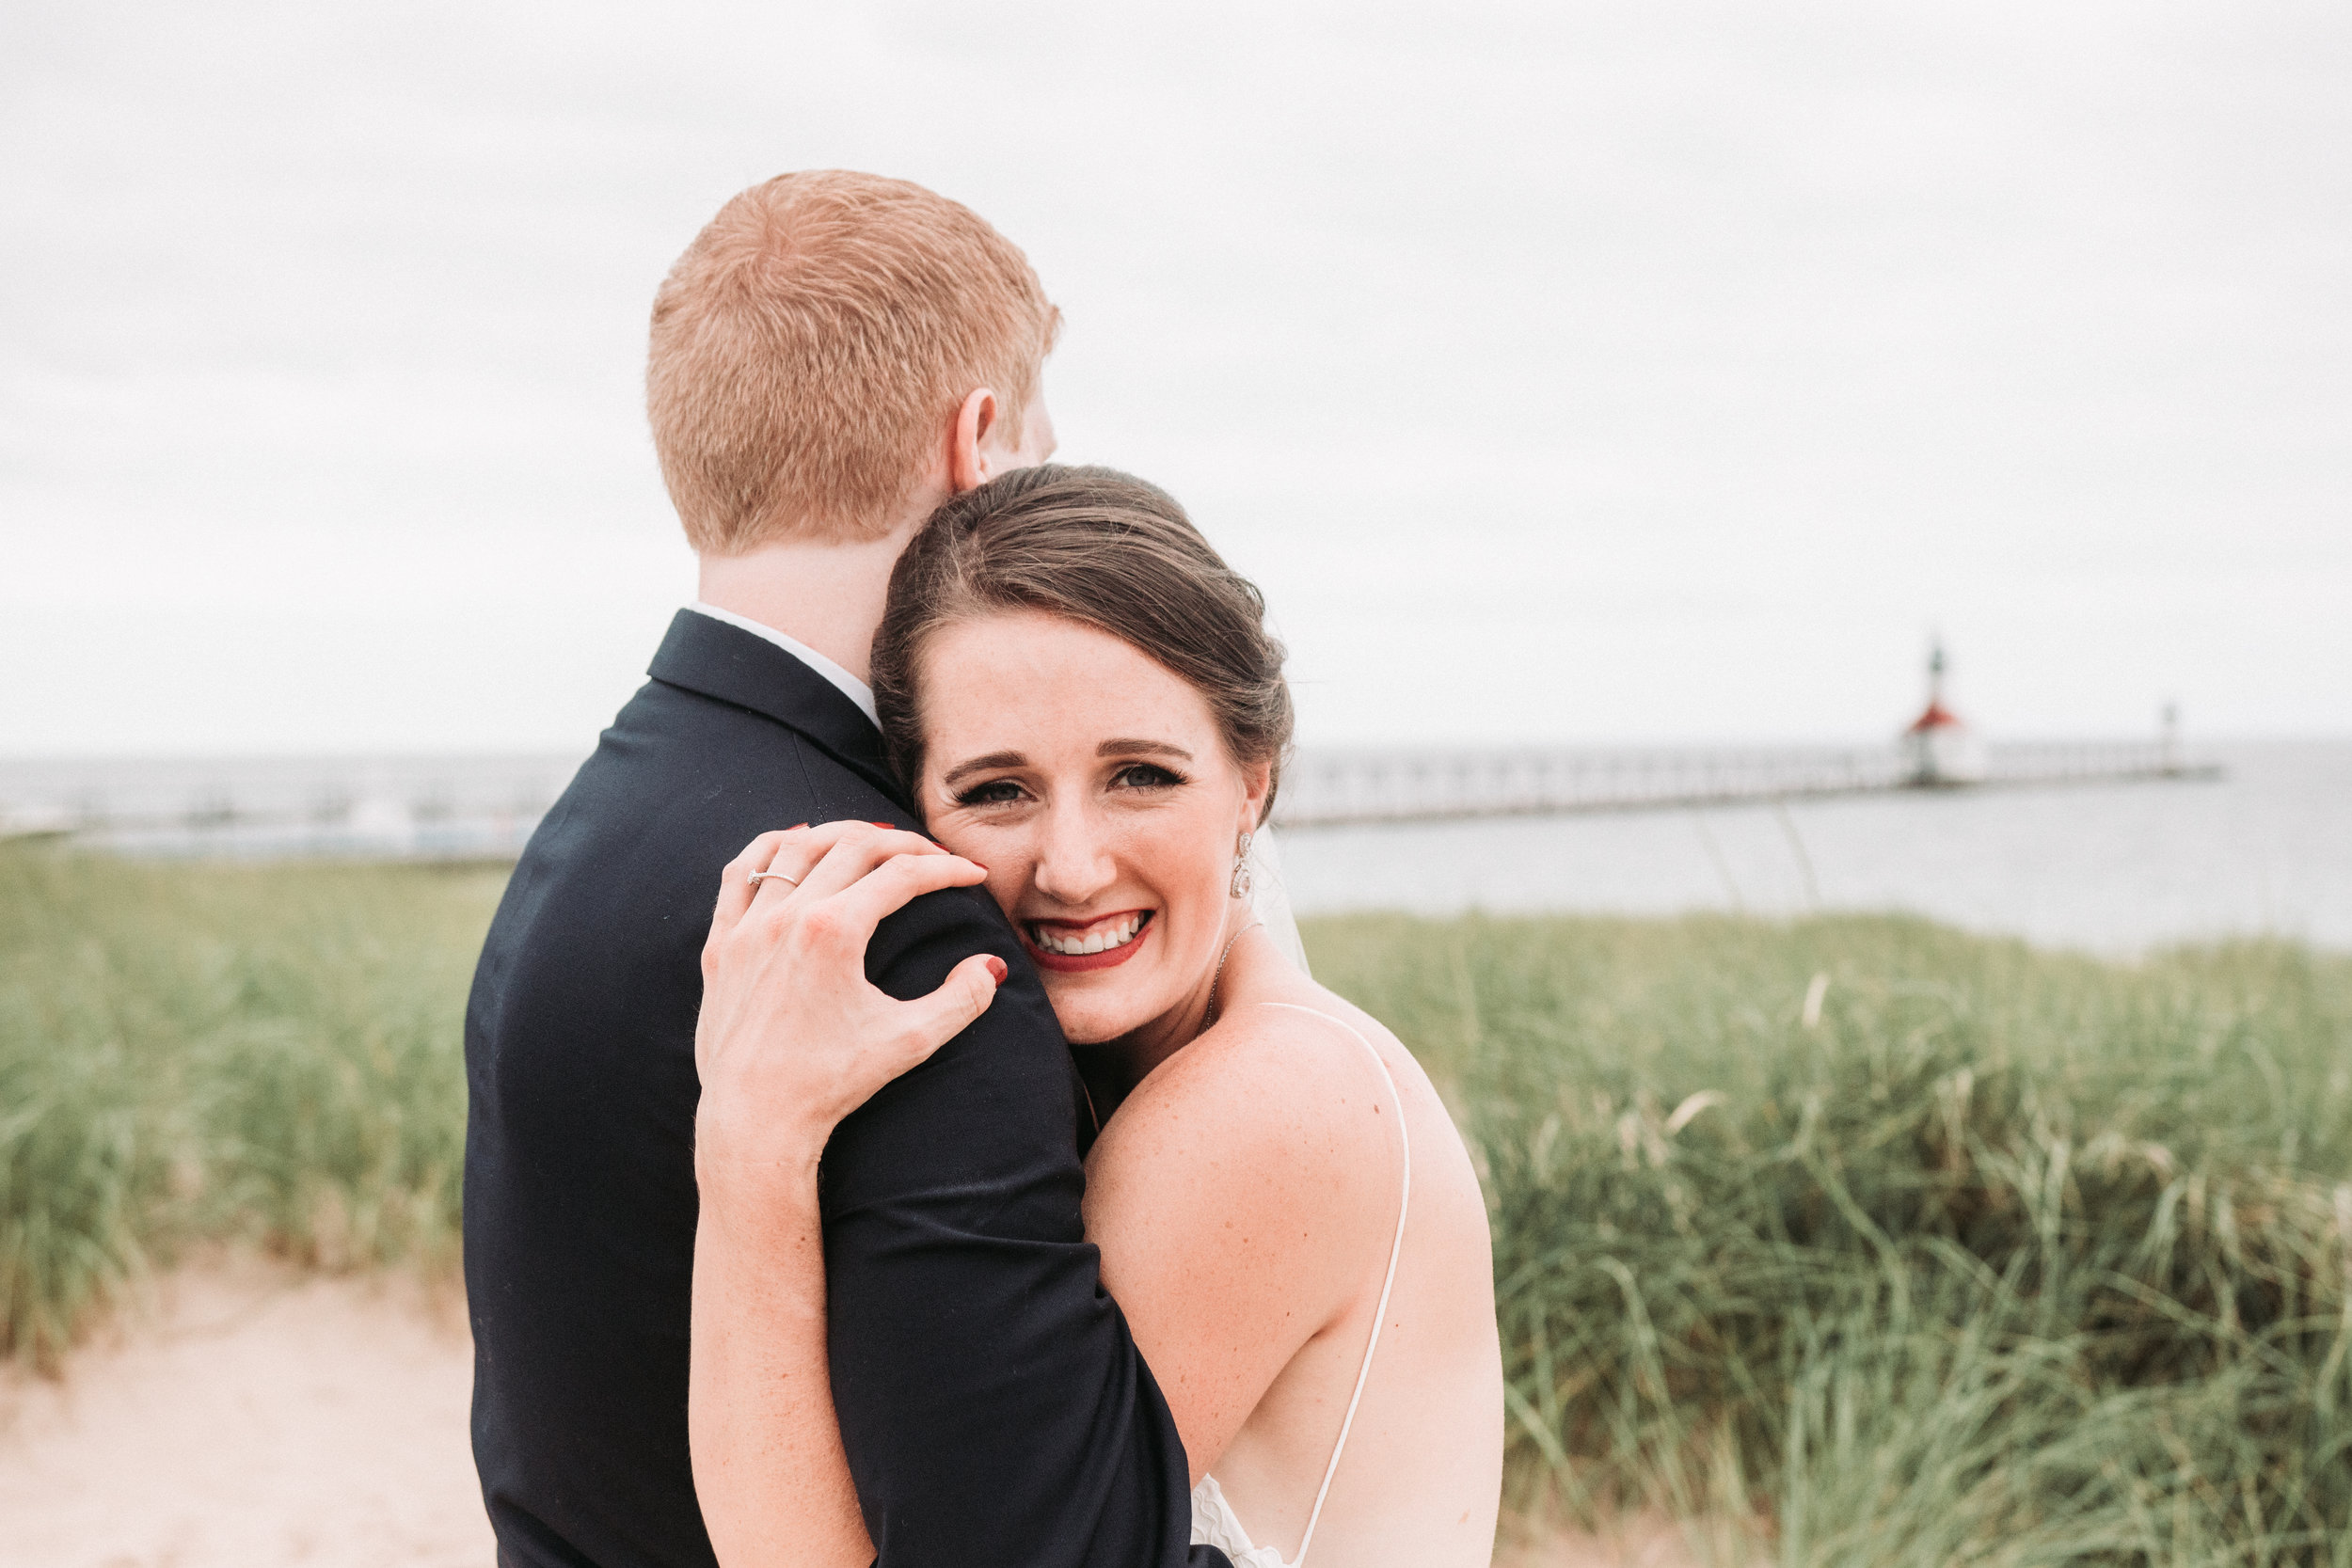 Saint Joseph, Michigan Award Winning Wedding Photographer